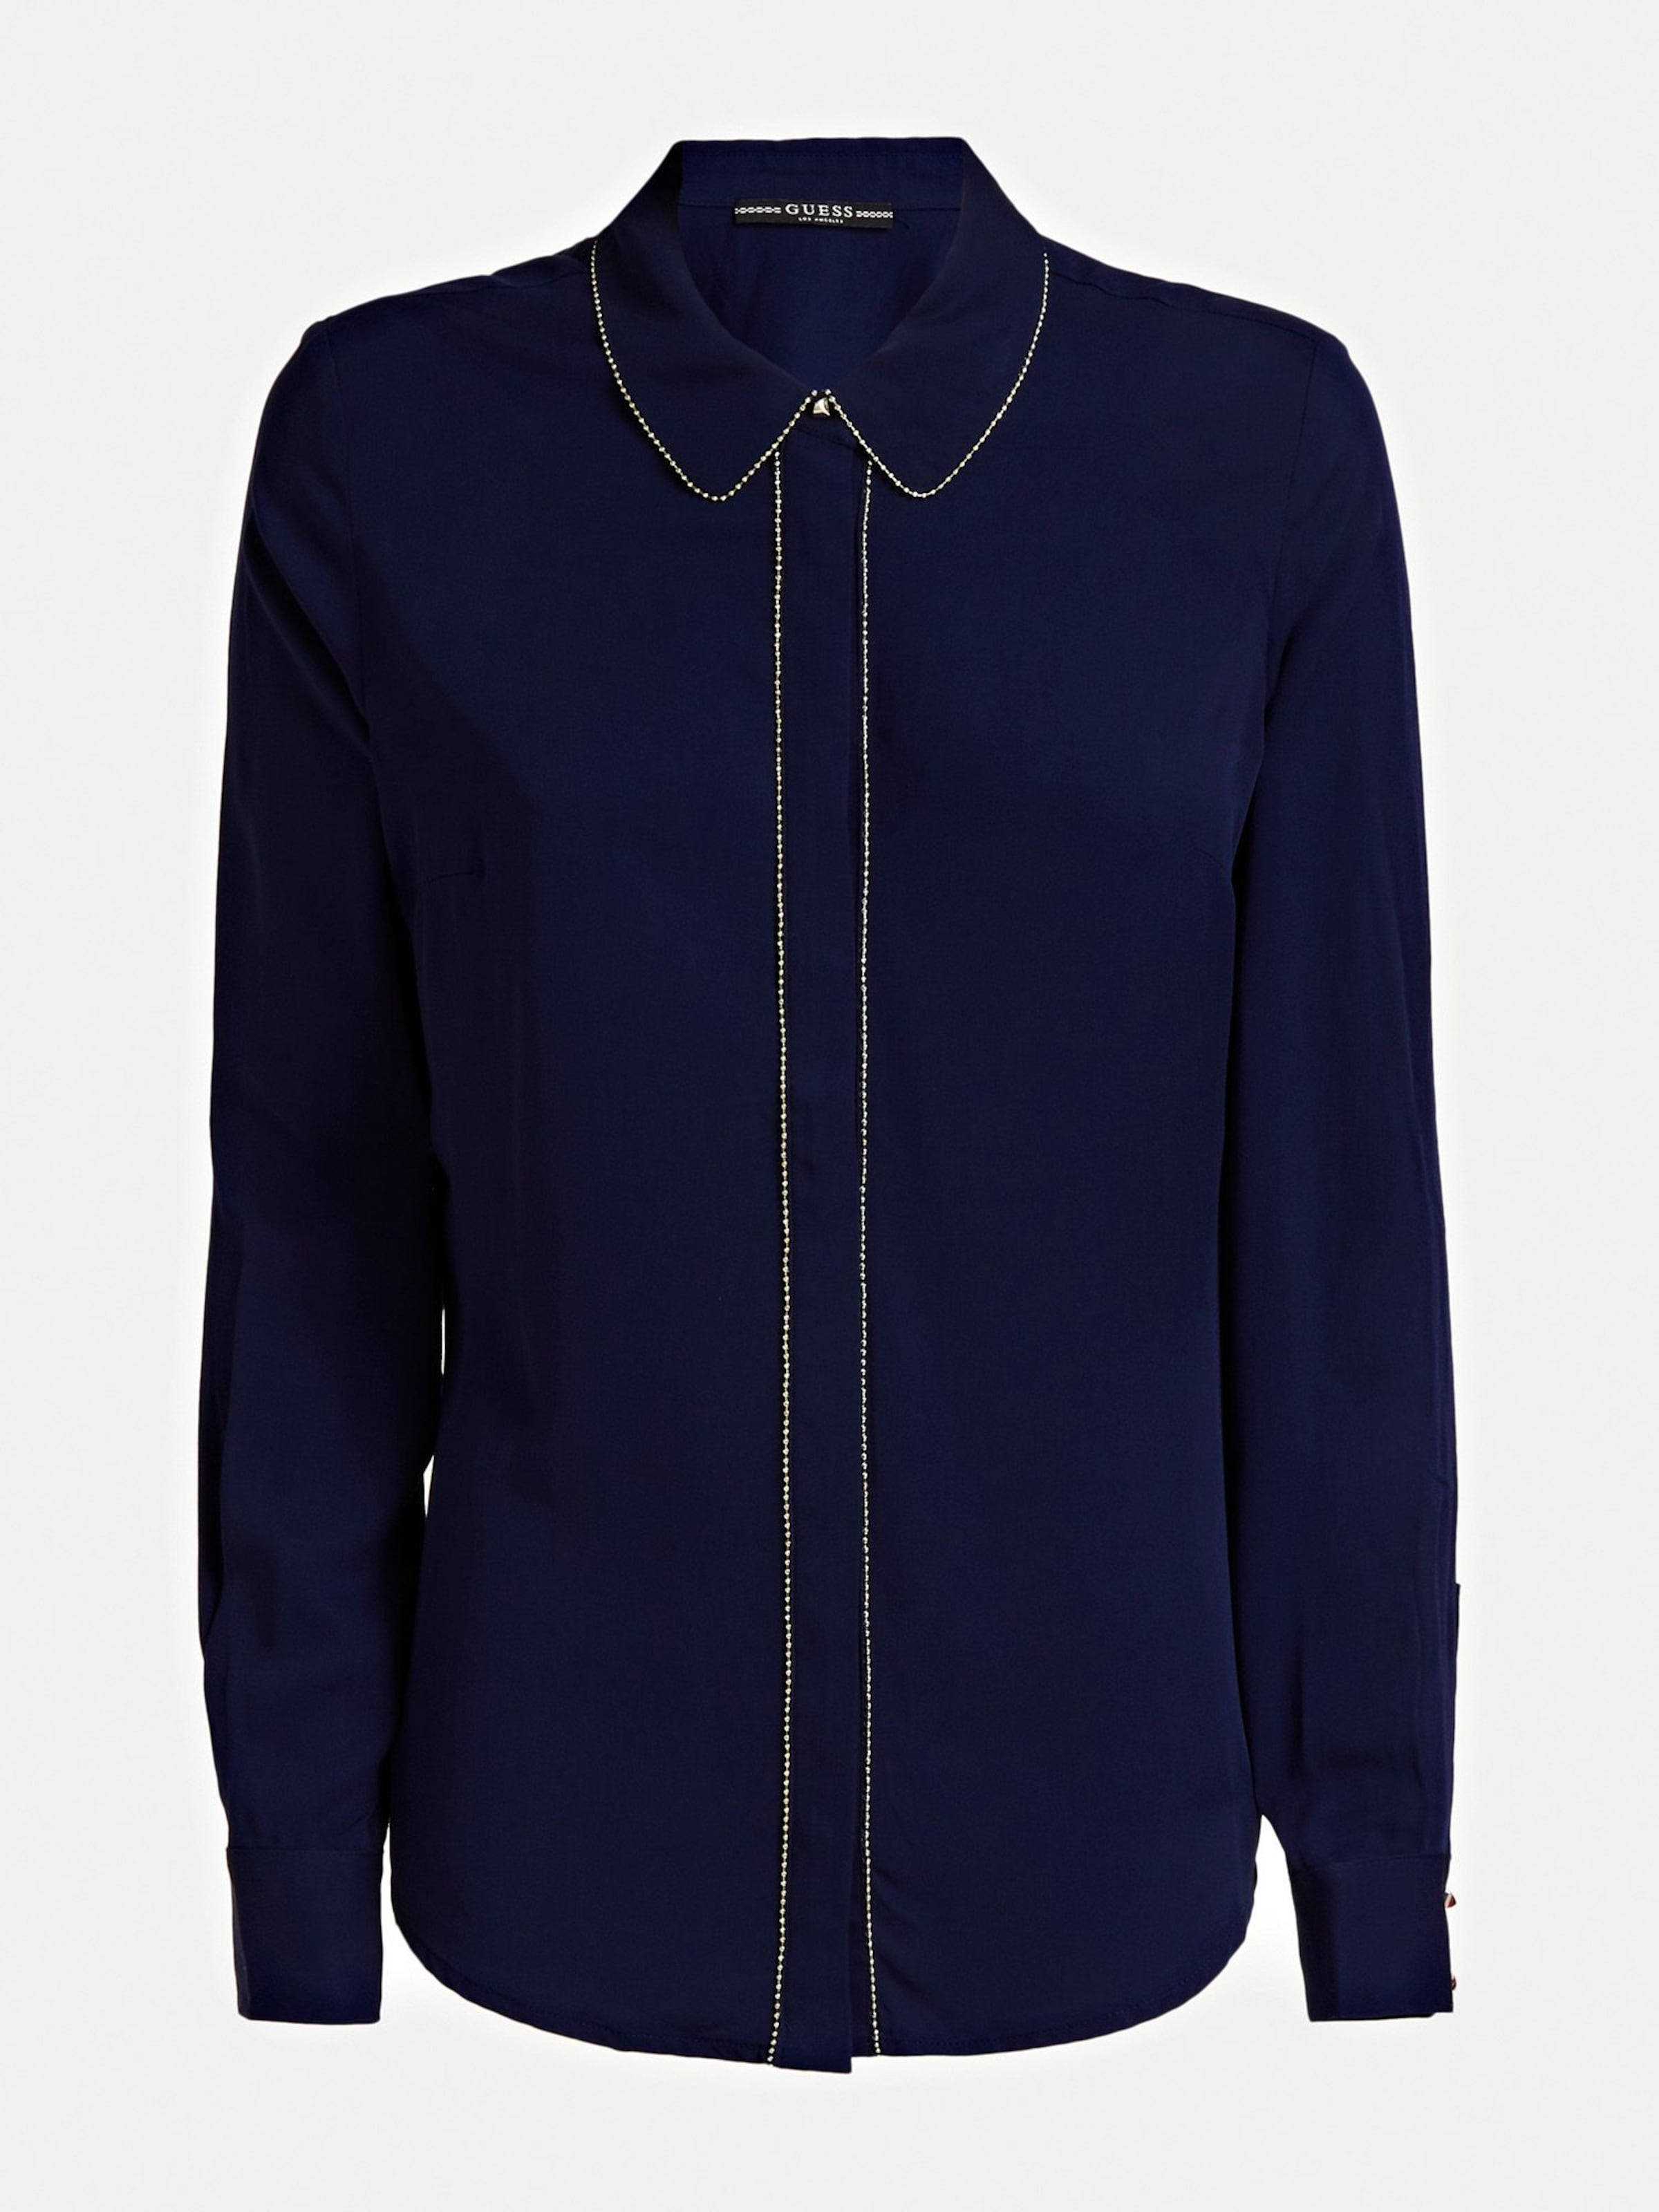 Navy In In Navy Bluse Bluse Guess Bluse Guess Navy Bluse Guess Guess In kPZiwOXuT